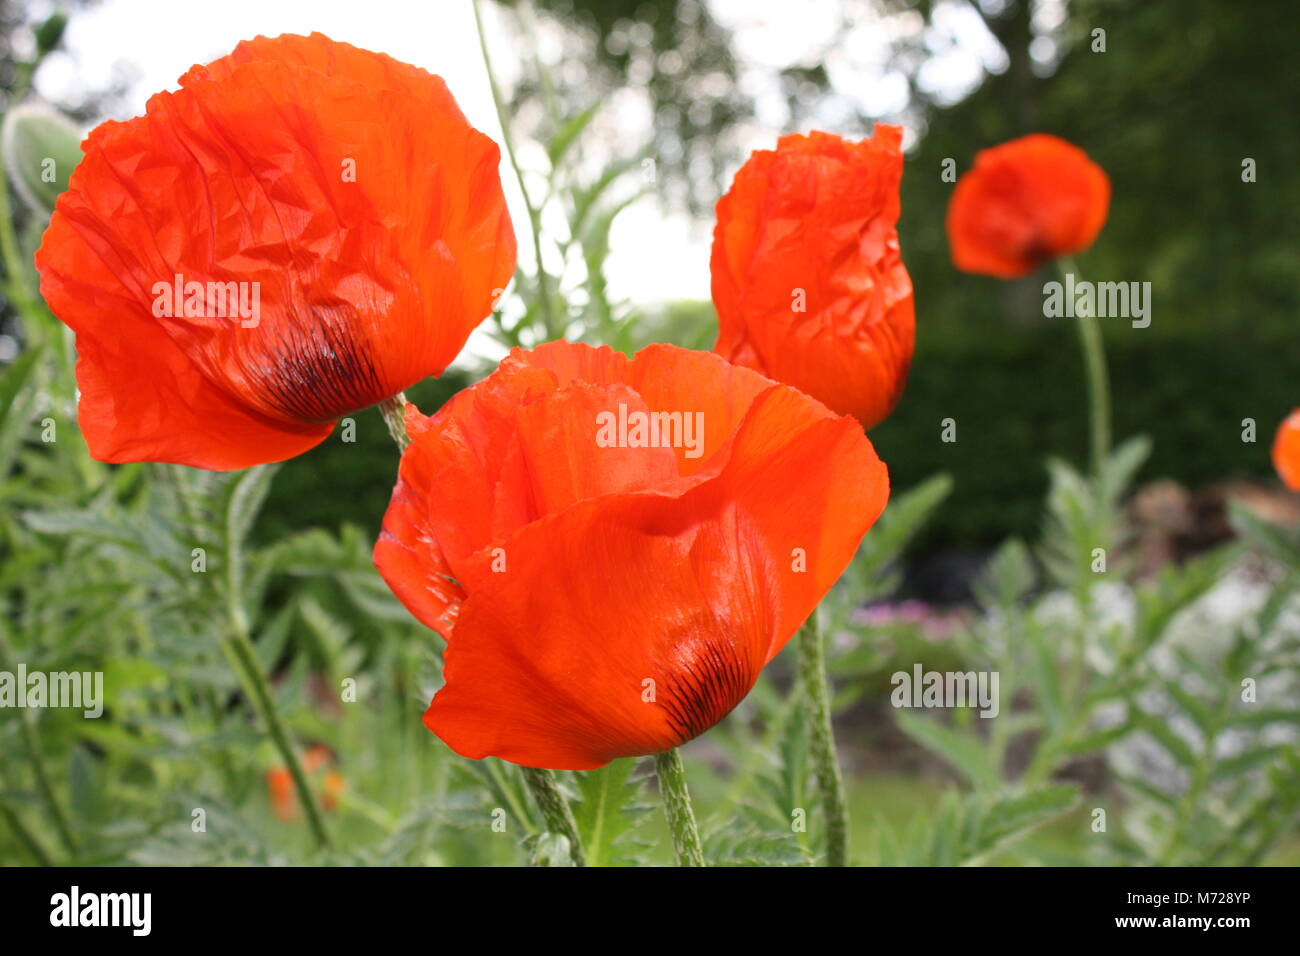 Poppies and heroin stock photos poppies and heroin stock images wild poppies stock image mightylinksfo